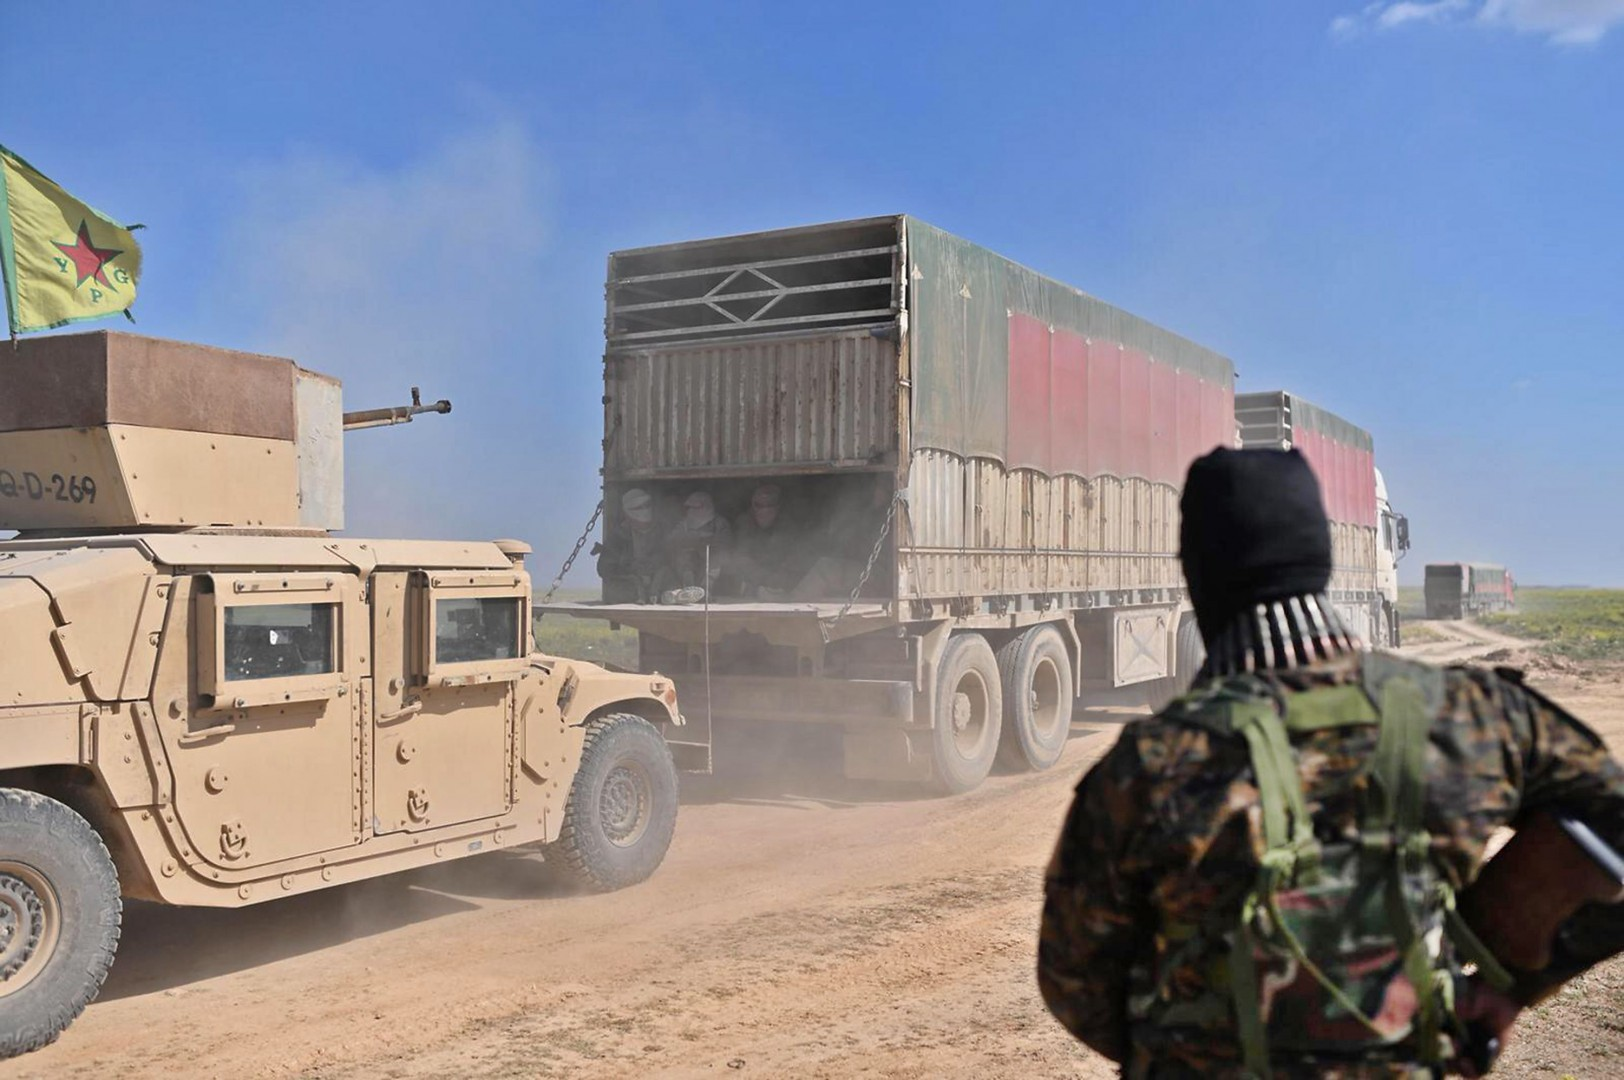 "A military vehicle with the US-backed coalition in Syria drives behind a convoy of trucks carrying Islamic State group's fighters and their families after they left IS's last holdout of Baghouz in Syria's northern Deir Ezzor province on February 20, 2019. - A convoy of trucks evacuated dozens of people from the Islamic State group's last Syria redoubt, bringing US-backed forces closer to retaking the final patch of their 2014 ""caliphate"". The implosion of the jihadist proto-state which once spanned swathes of Syria and neighbouring Iraq has left Western nations grappling with how to handle citizens who left to join IS. (Photo by Bulent KILIC / AFP)"